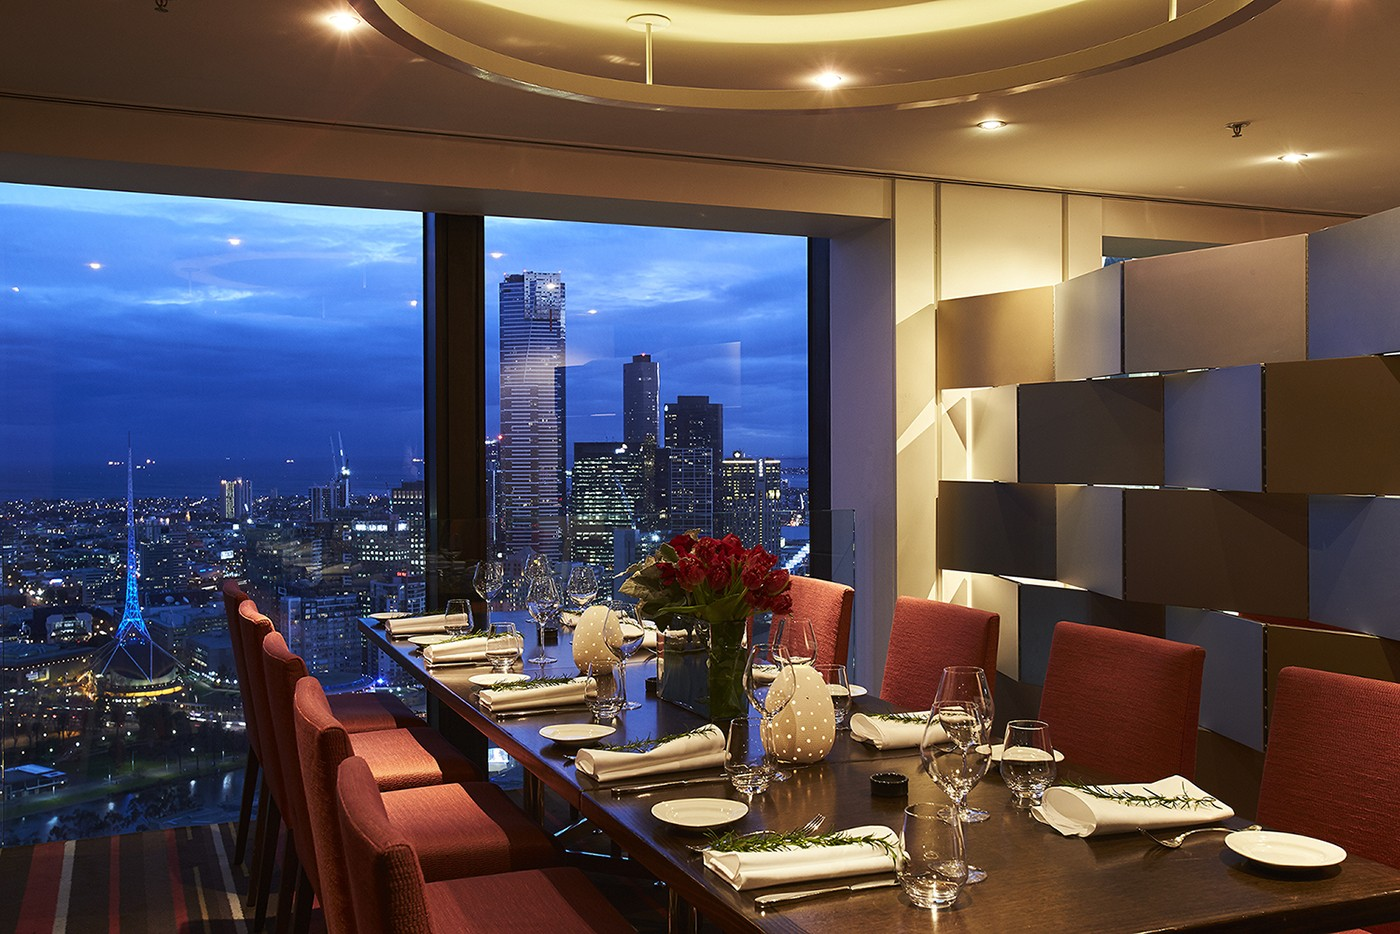 Sofitel-MOC-No35-Bay-Room-12-Photo-Credit-Marcus-Thomson.jpg